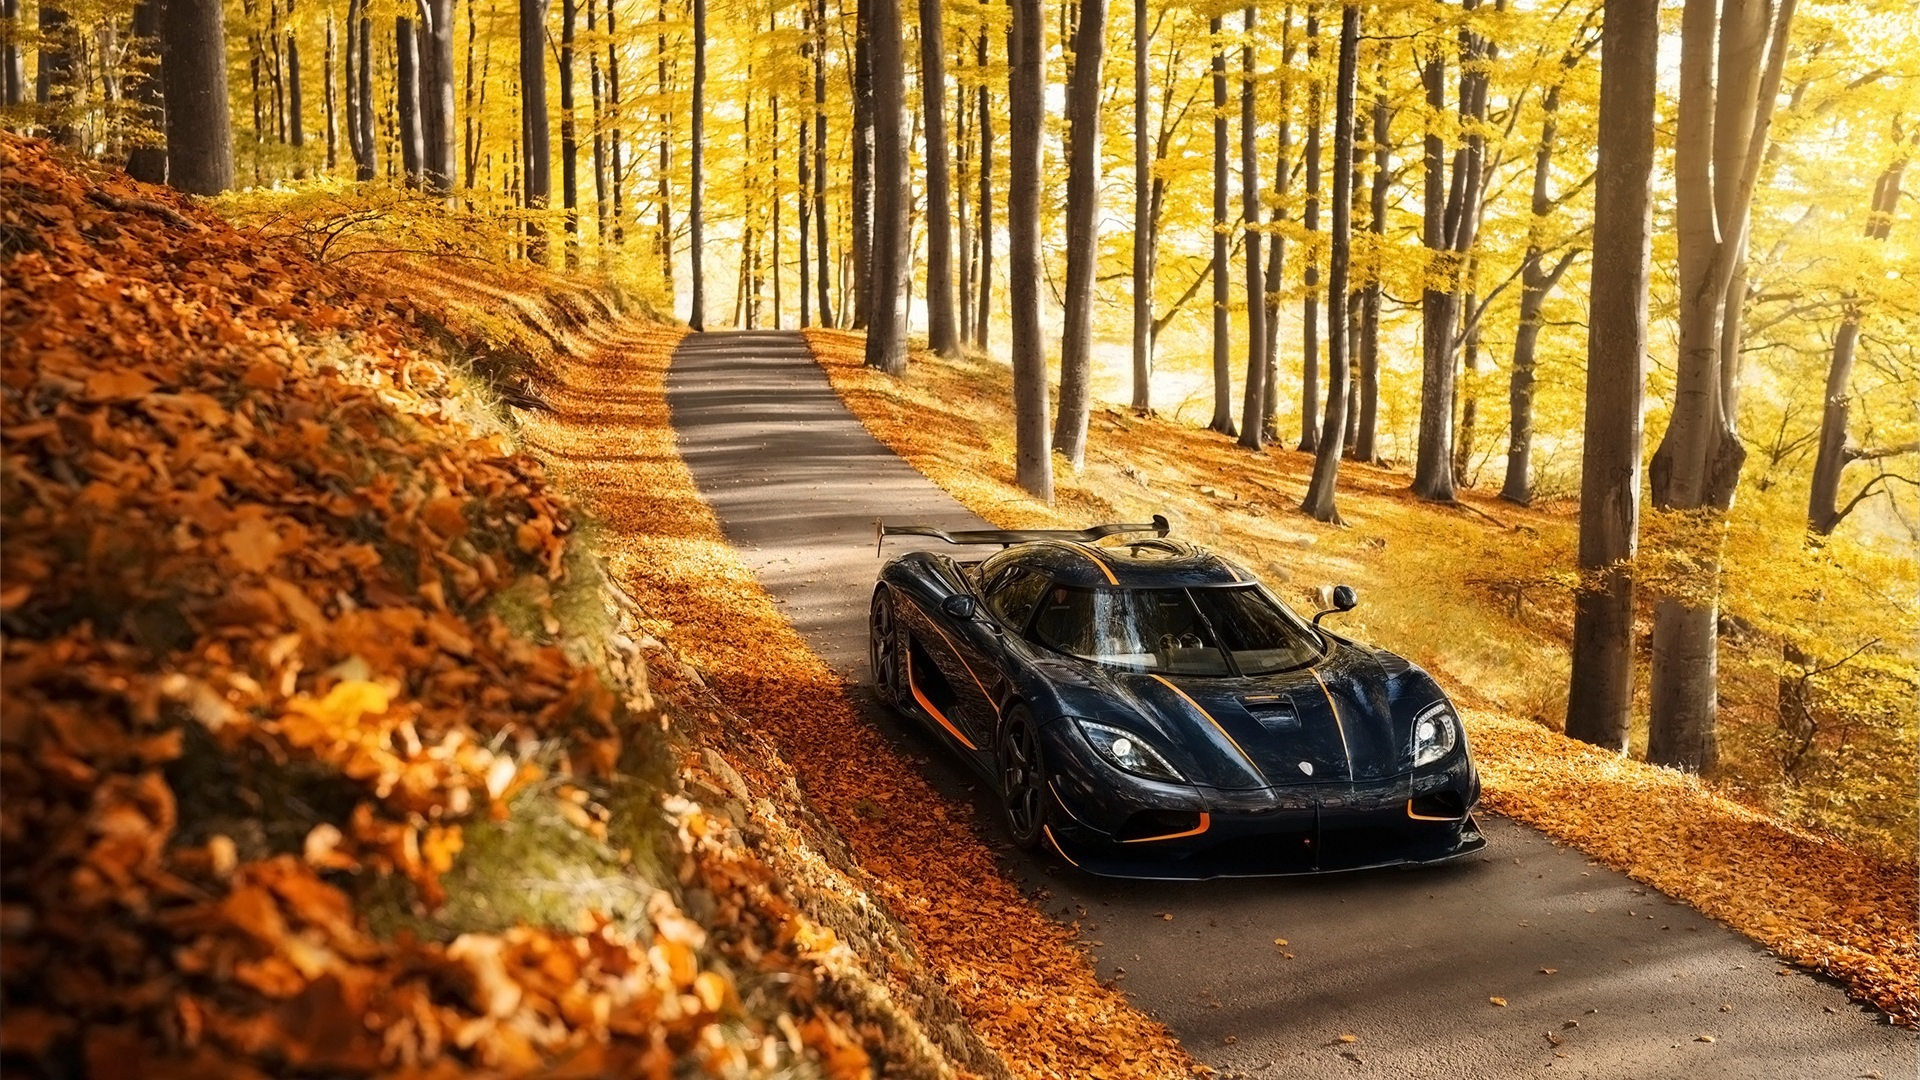 and,thought,vista,sentiment,rs,universe,koenigsegg,trees,natural state,autumn,survey,perspective,fall,position,cosmos,view,nature,agera